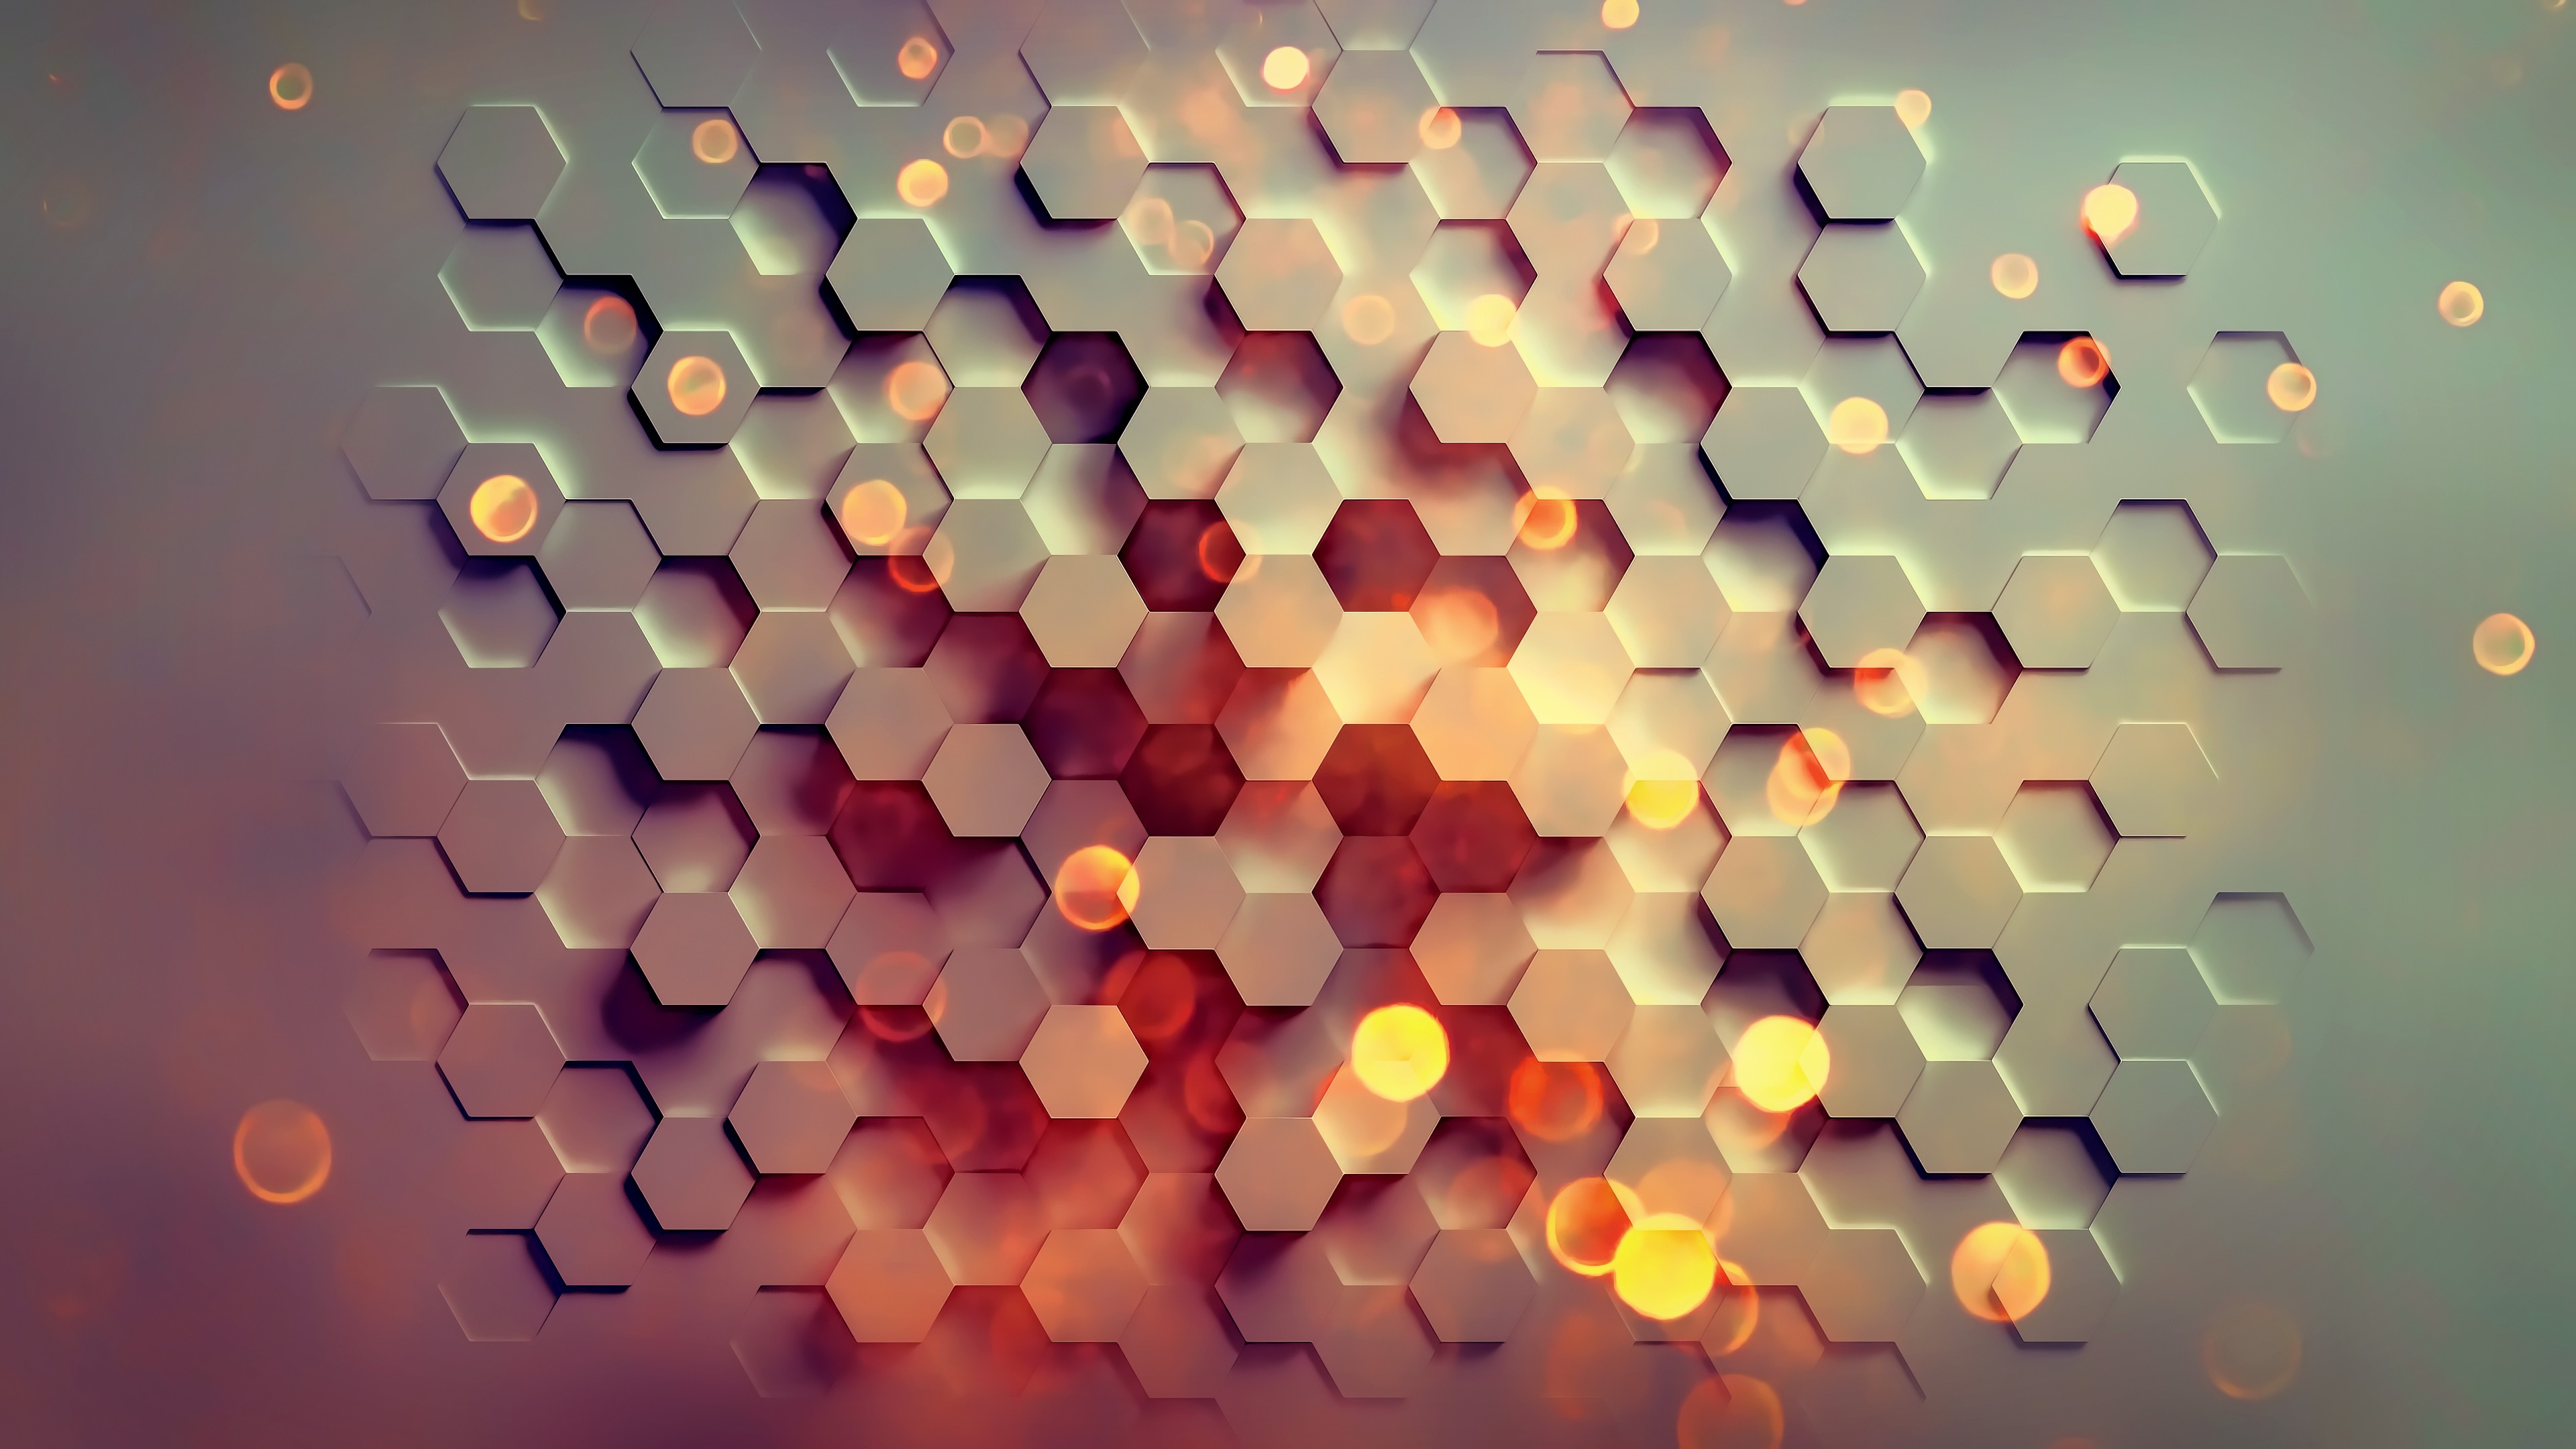 Desktop Wallpaper 3d Hexagons Pattern Abstract 4k Hd Image Picture Background 7a5562